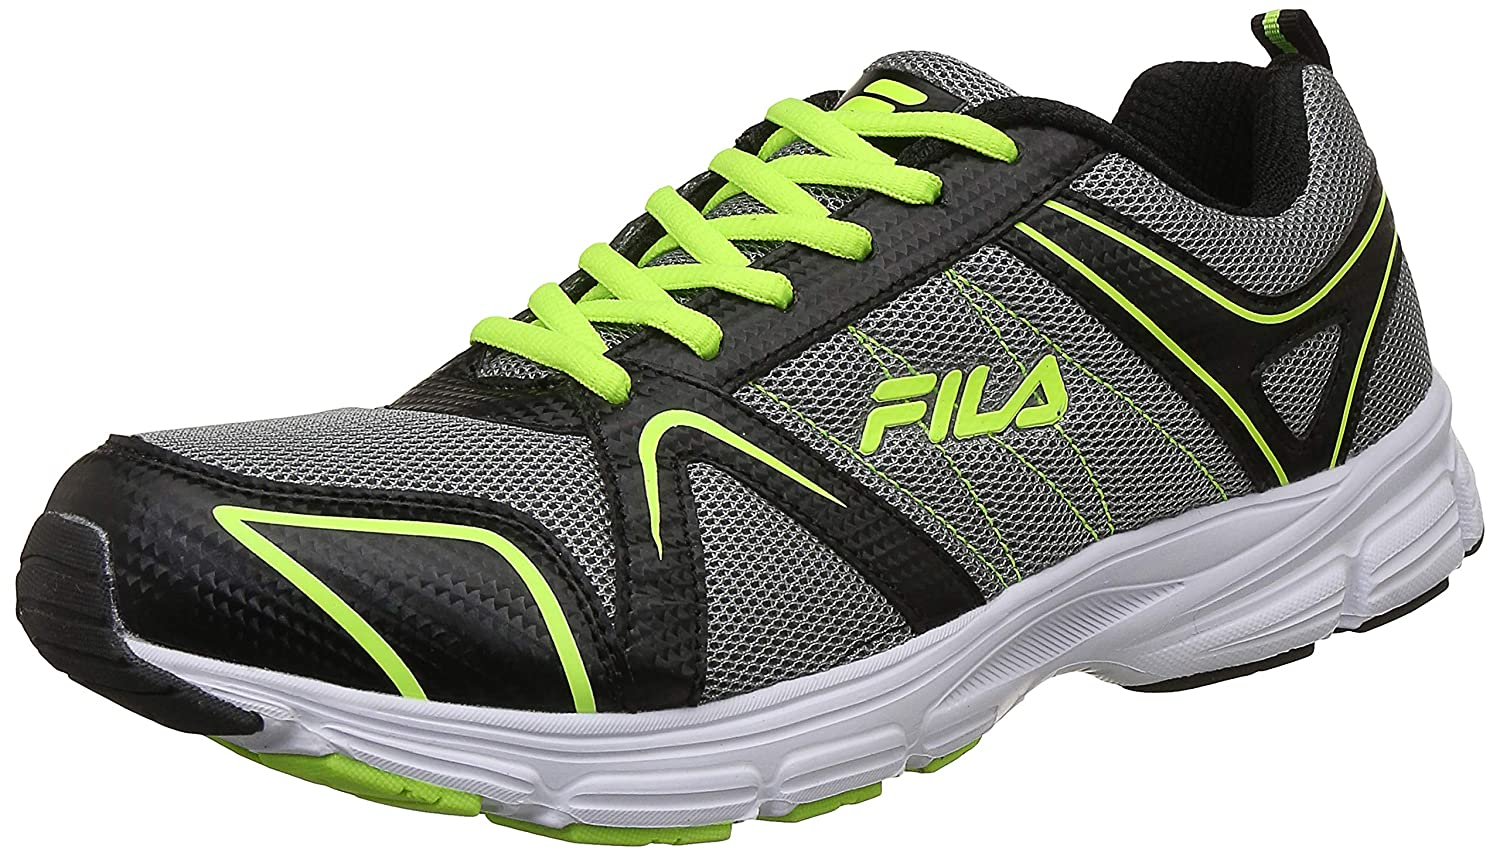 2f5d171ef0b2 Fila Men s Calimo Running Shoes  Buy Online at Low Prices in India -  Amazon.in